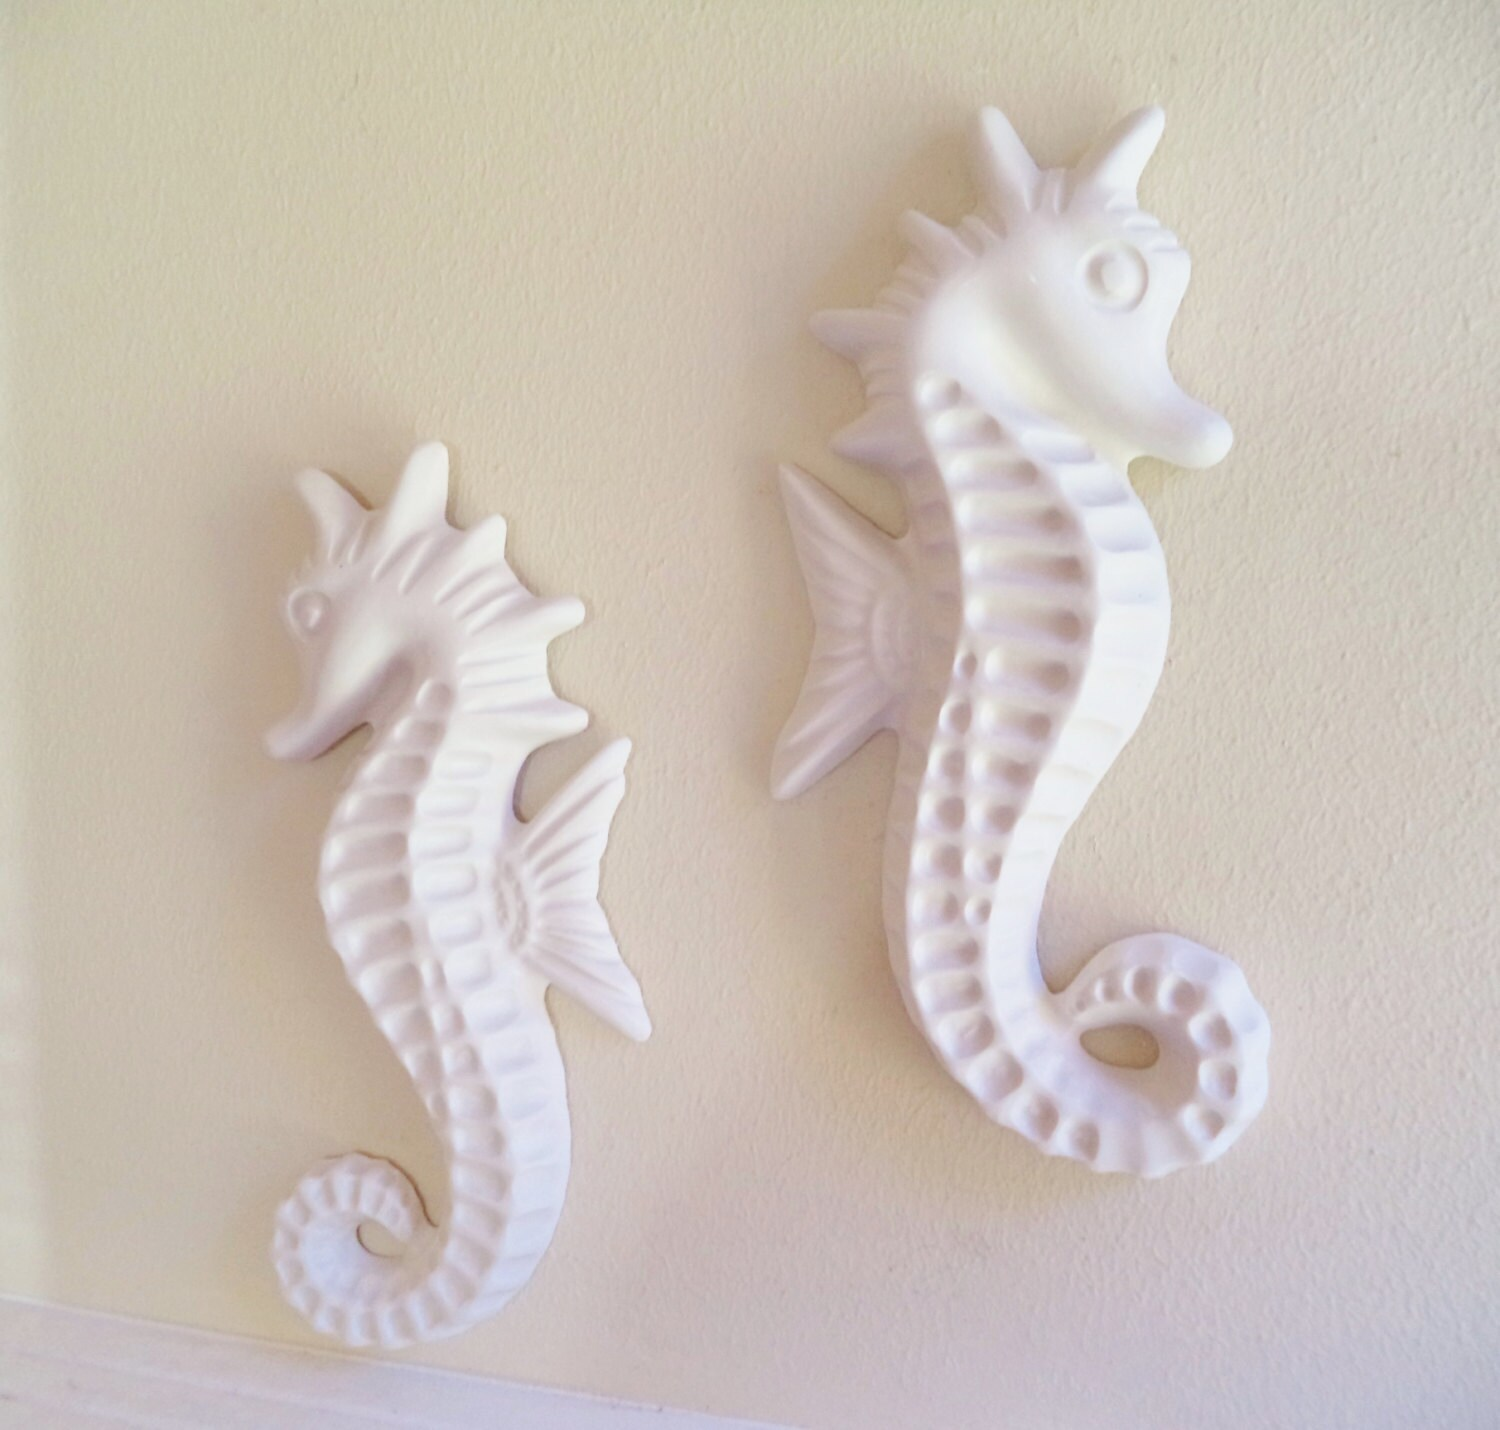 Elegant Large Seahorse Wall Decor, Beachy Decor From Grace And Frankie, Nautical  Art, Seahorse Sculptures, Pair Of Seahorses